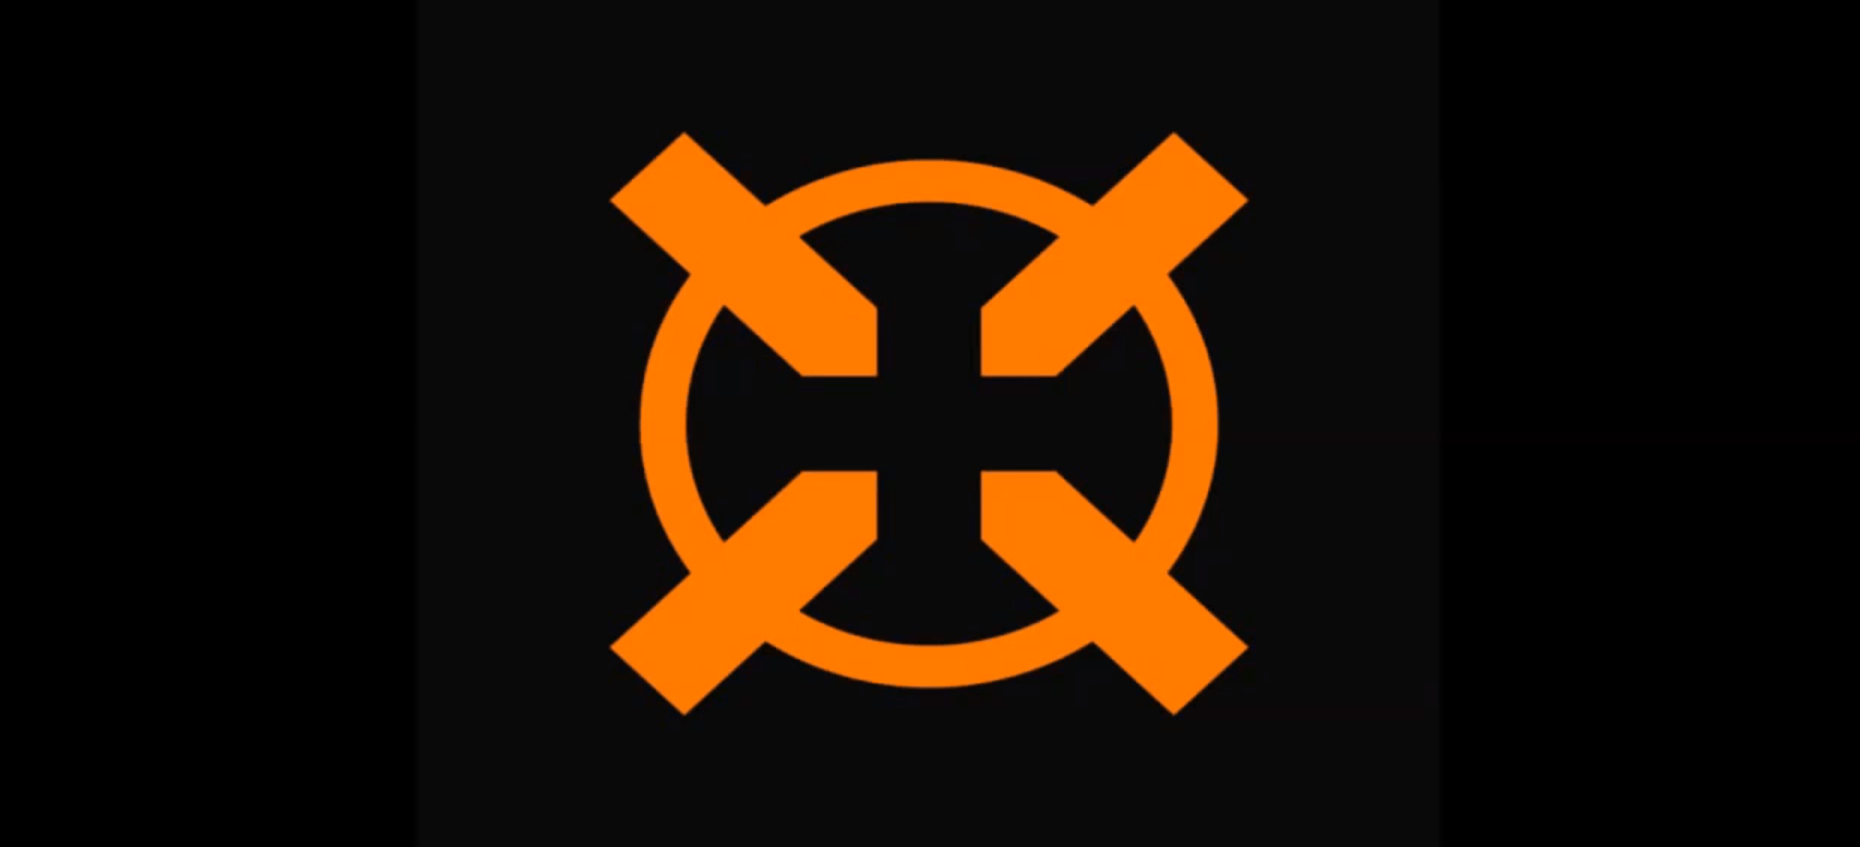 Esports Job Platform Hitmarker Obliterates Their Crowdfunding Goal And It Only Took A Few Days Crowdfundin How To Raise Money Crowdfunding Equity Crowdfunding